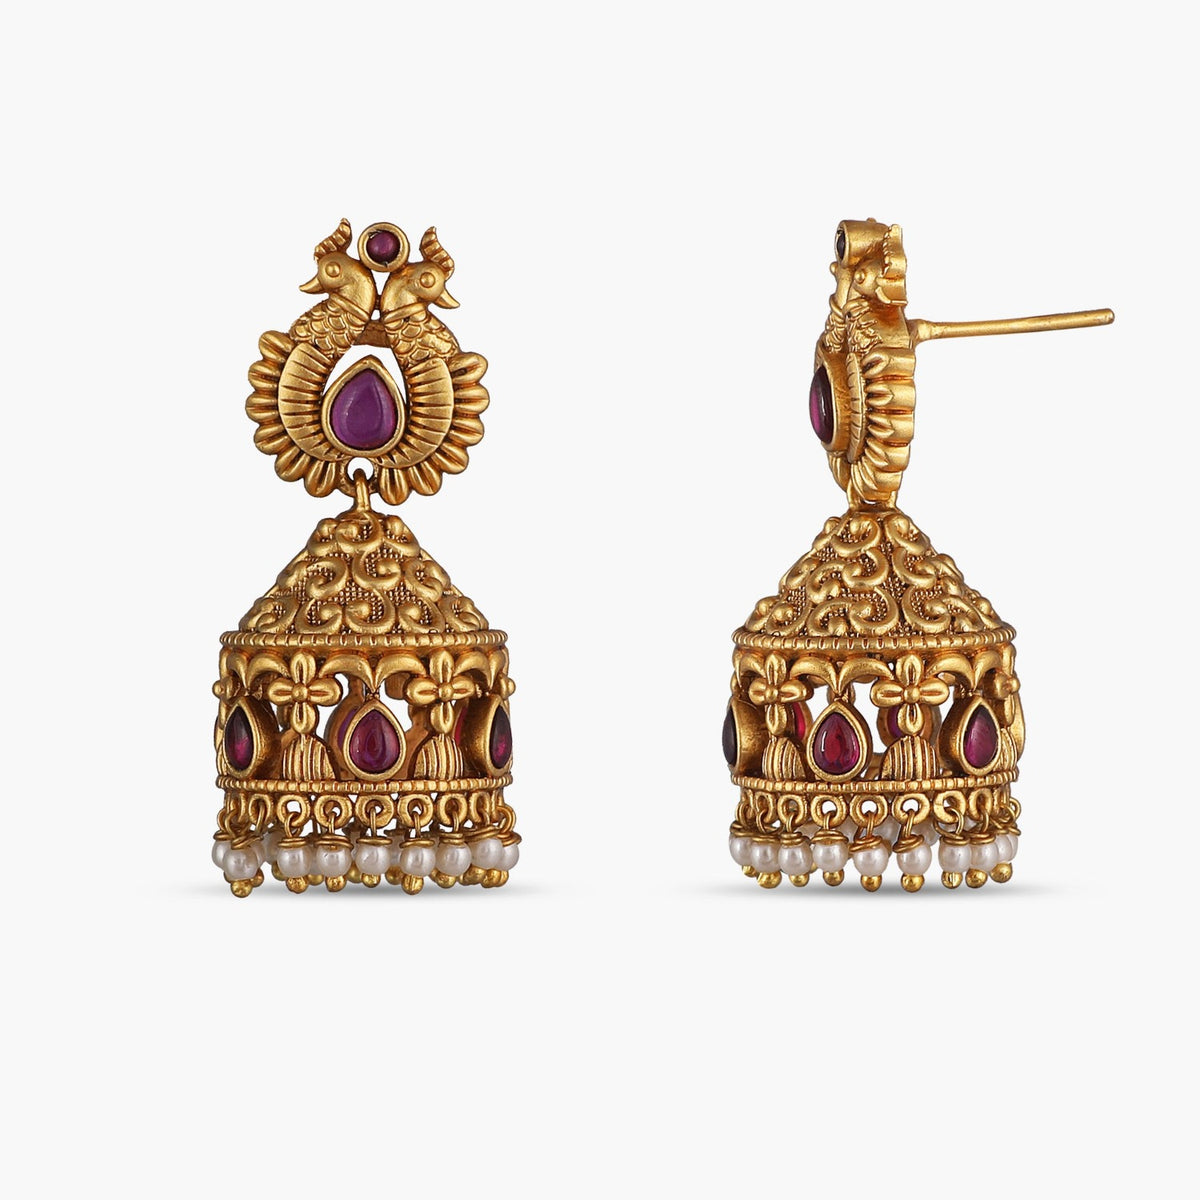 Keka Antique Jhumka Earrings